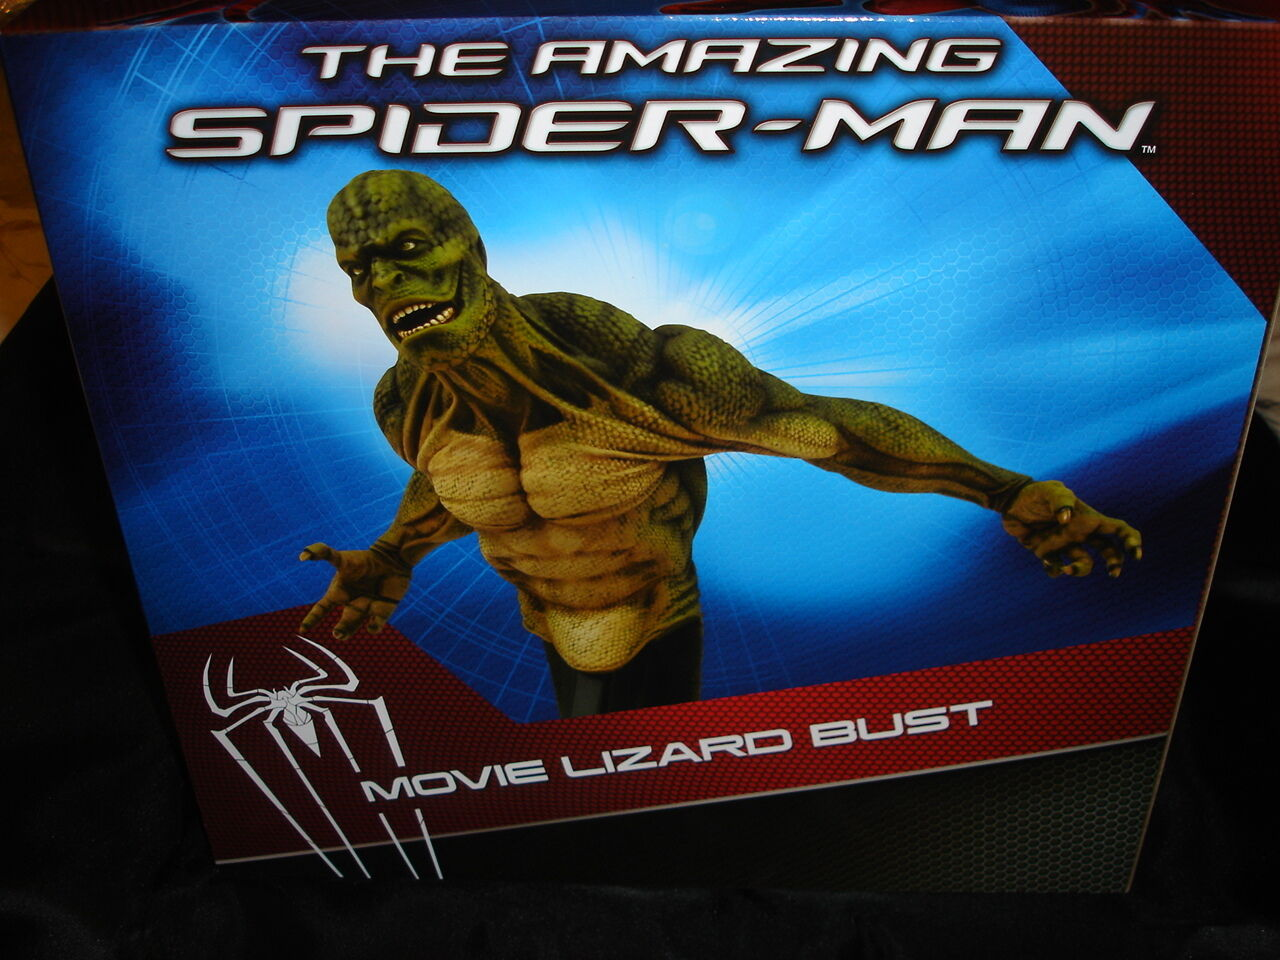 Amazing Spider-Man Lizard Bust - By Diamond Select - New - spiderman